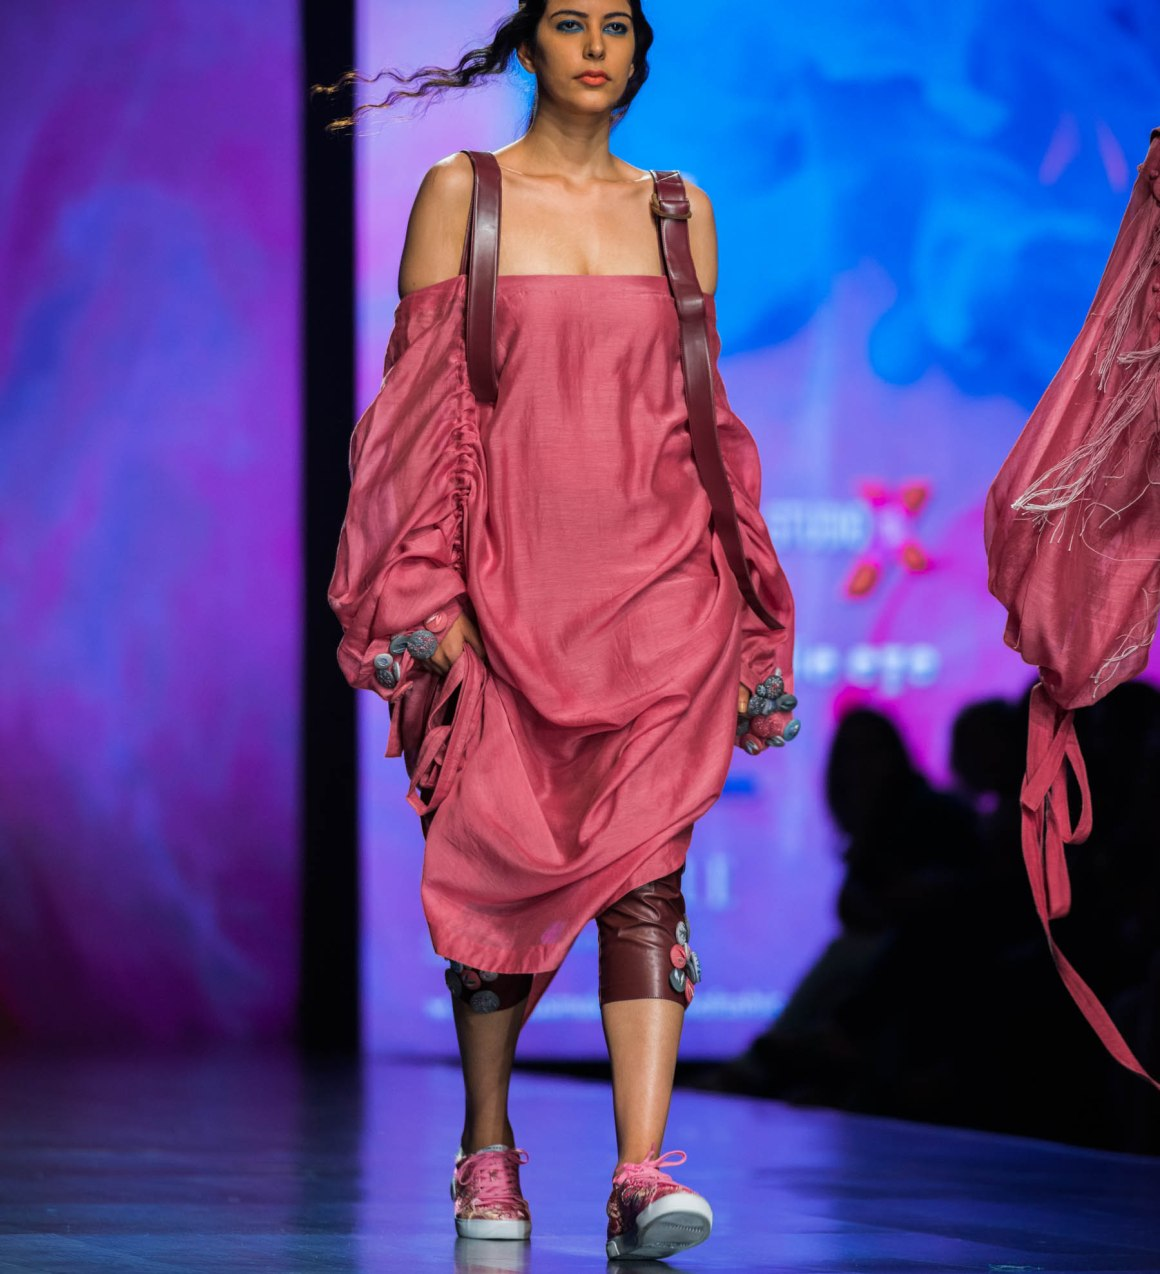 Naina Redhu, Naina.co, Diksha Khanna, Fashion Designer, FDCI, Lotus MakeUp India Fashion Week Spring Summer 2019, LMIFWSS19, LMIFW, India Fashion Week, Fashion Week Delhi, MadeInIndia, Made In India, EyesForFashion, Professional Photographer, Blogger, Fashion Photographer, Lifestyle Photographer, Luxury Photographer, Delhi Photographer, Gurgaon Photographer, Delhi Blogger, Gurgaon Blogger, Indian Blogger